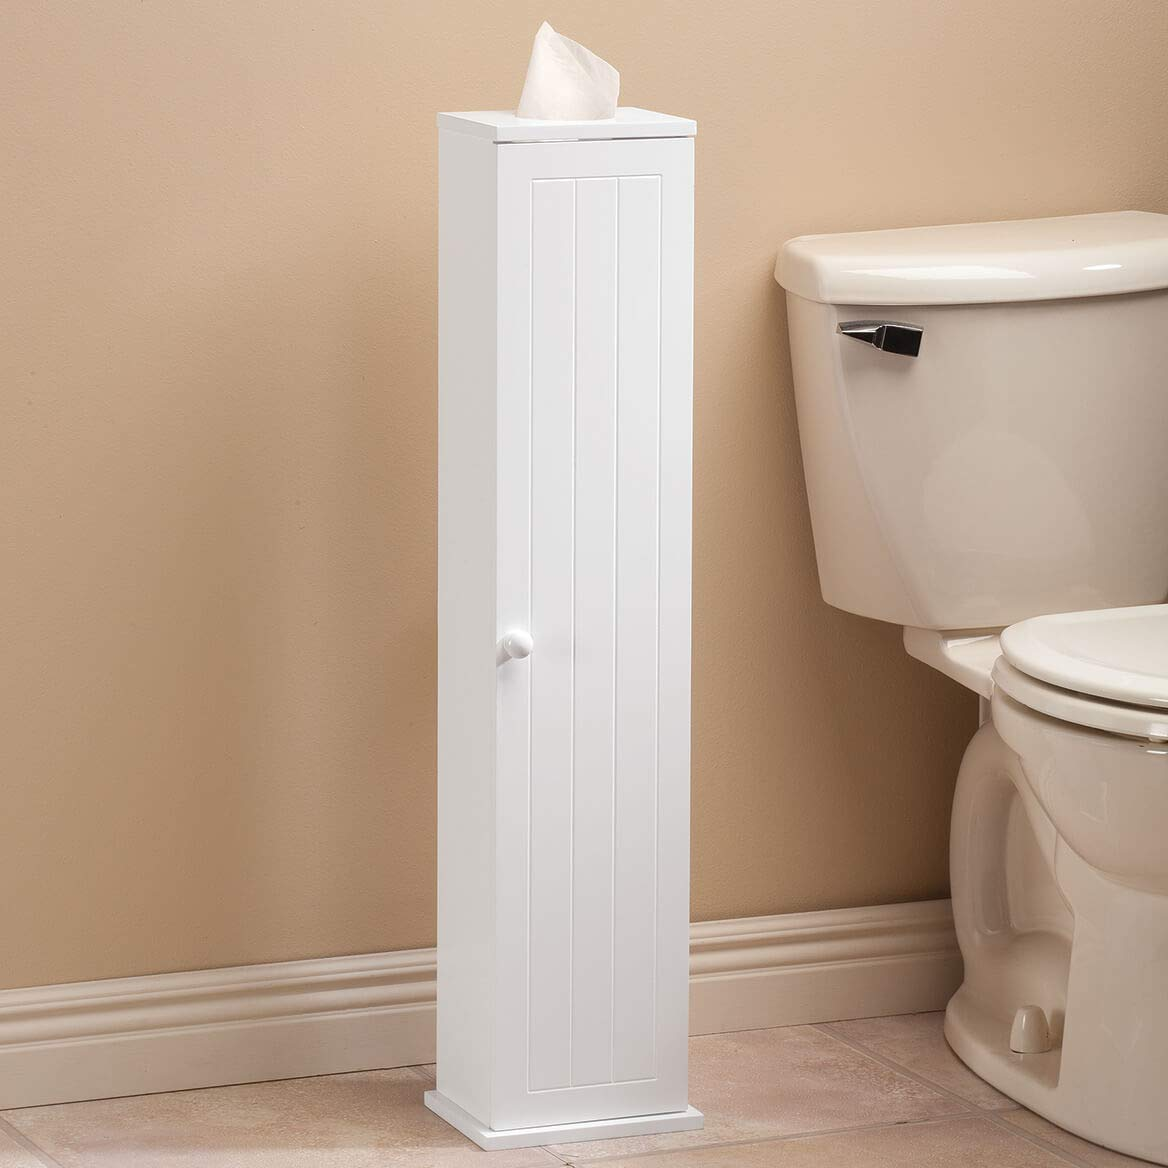 OakRidge Ambrose Collection Mega Roll Toilet Tissue Tower by OakRidge (Image #3)